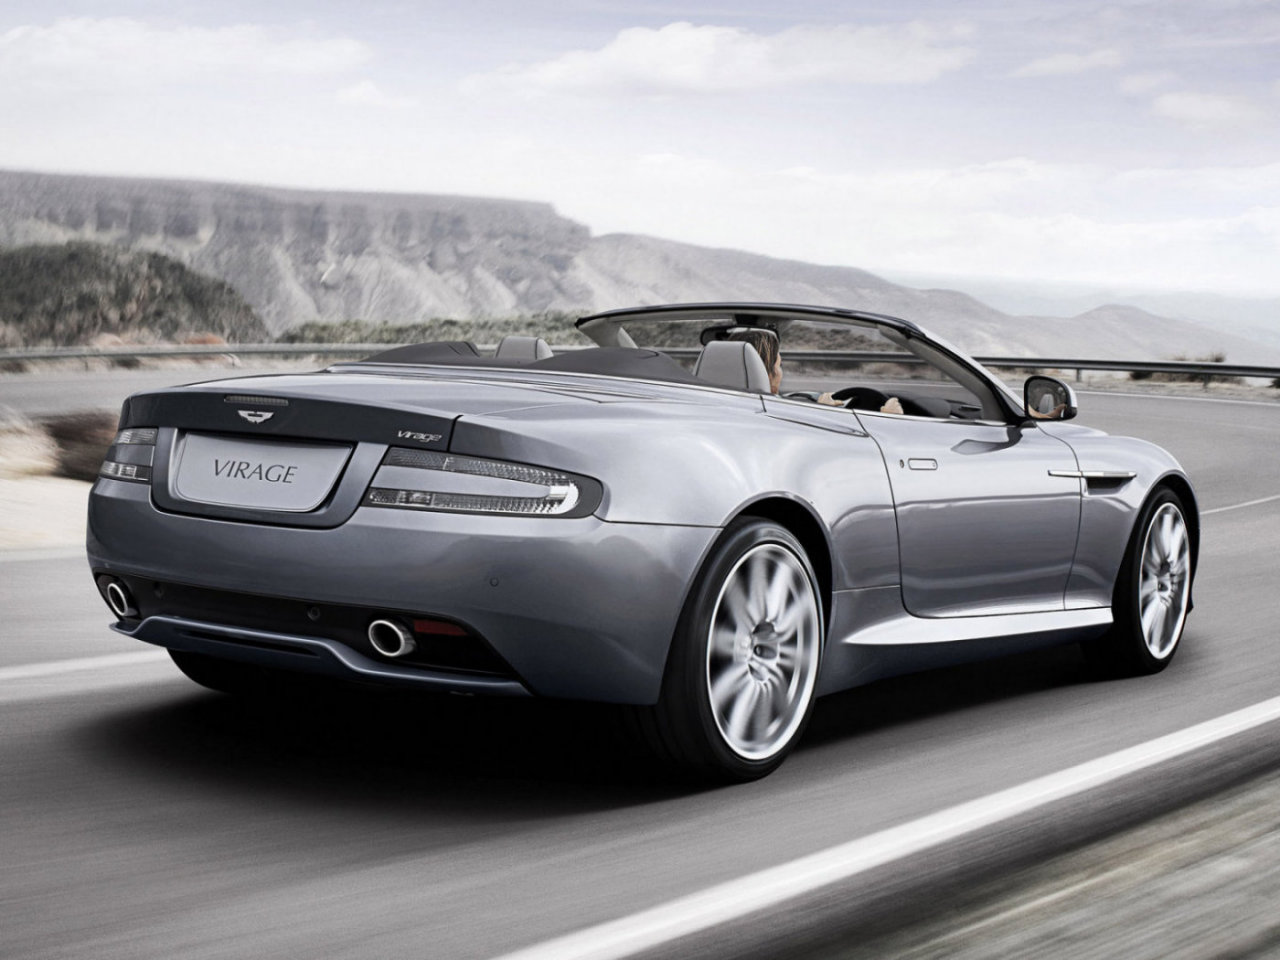 Aston Martin Virage: 12 фото